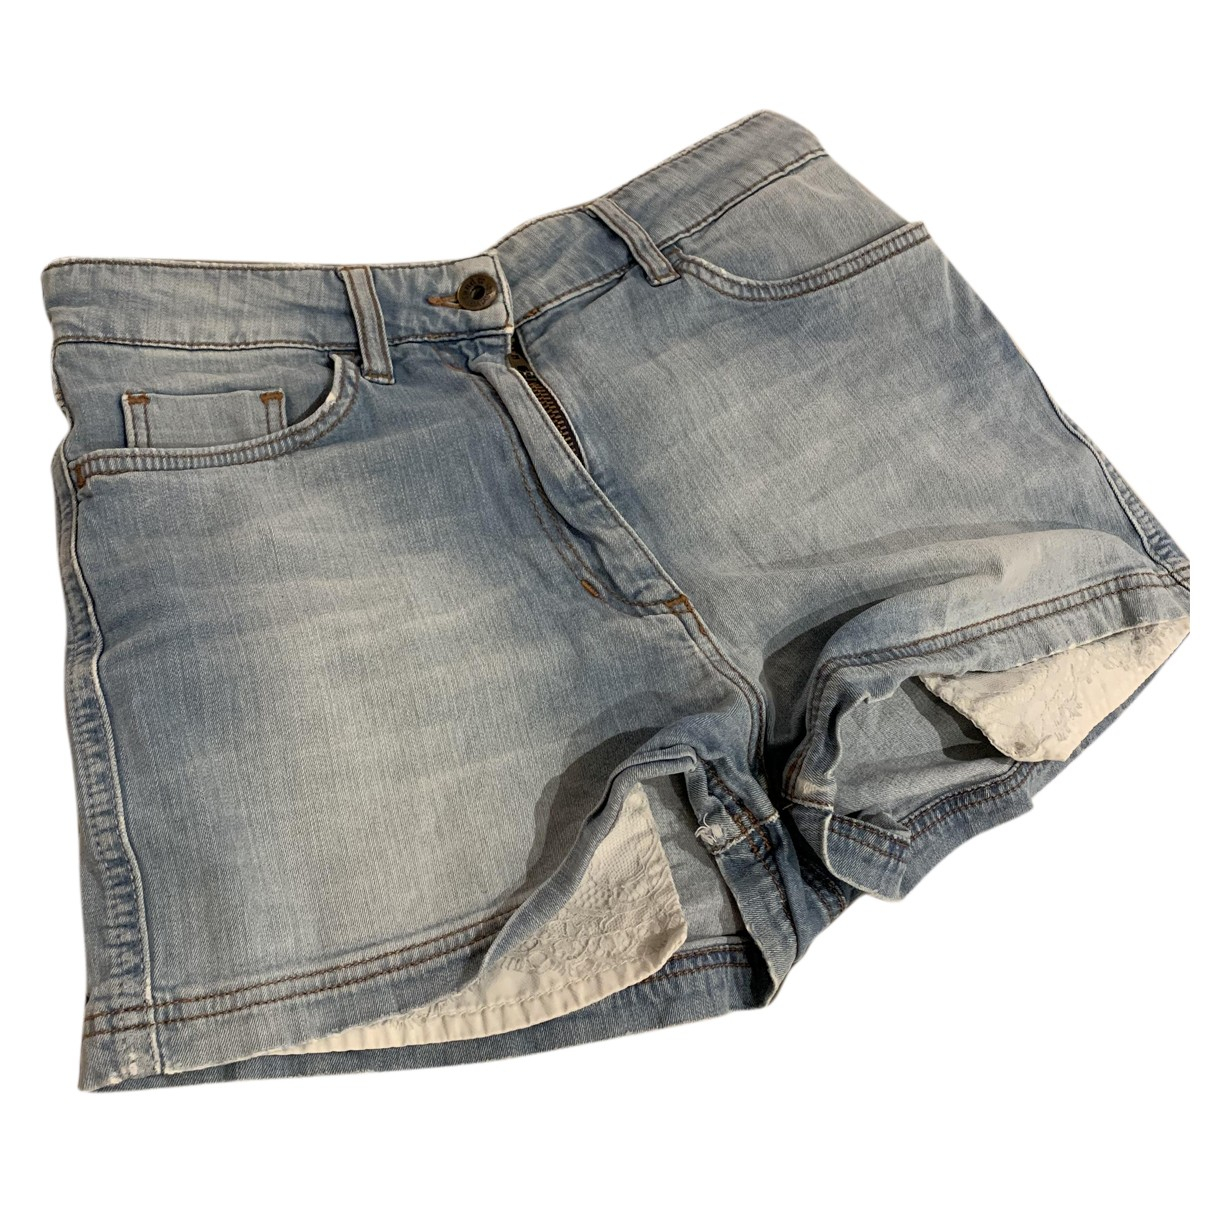 Sandro N Blue Denim - Jeans Shorts for Women 36 FR